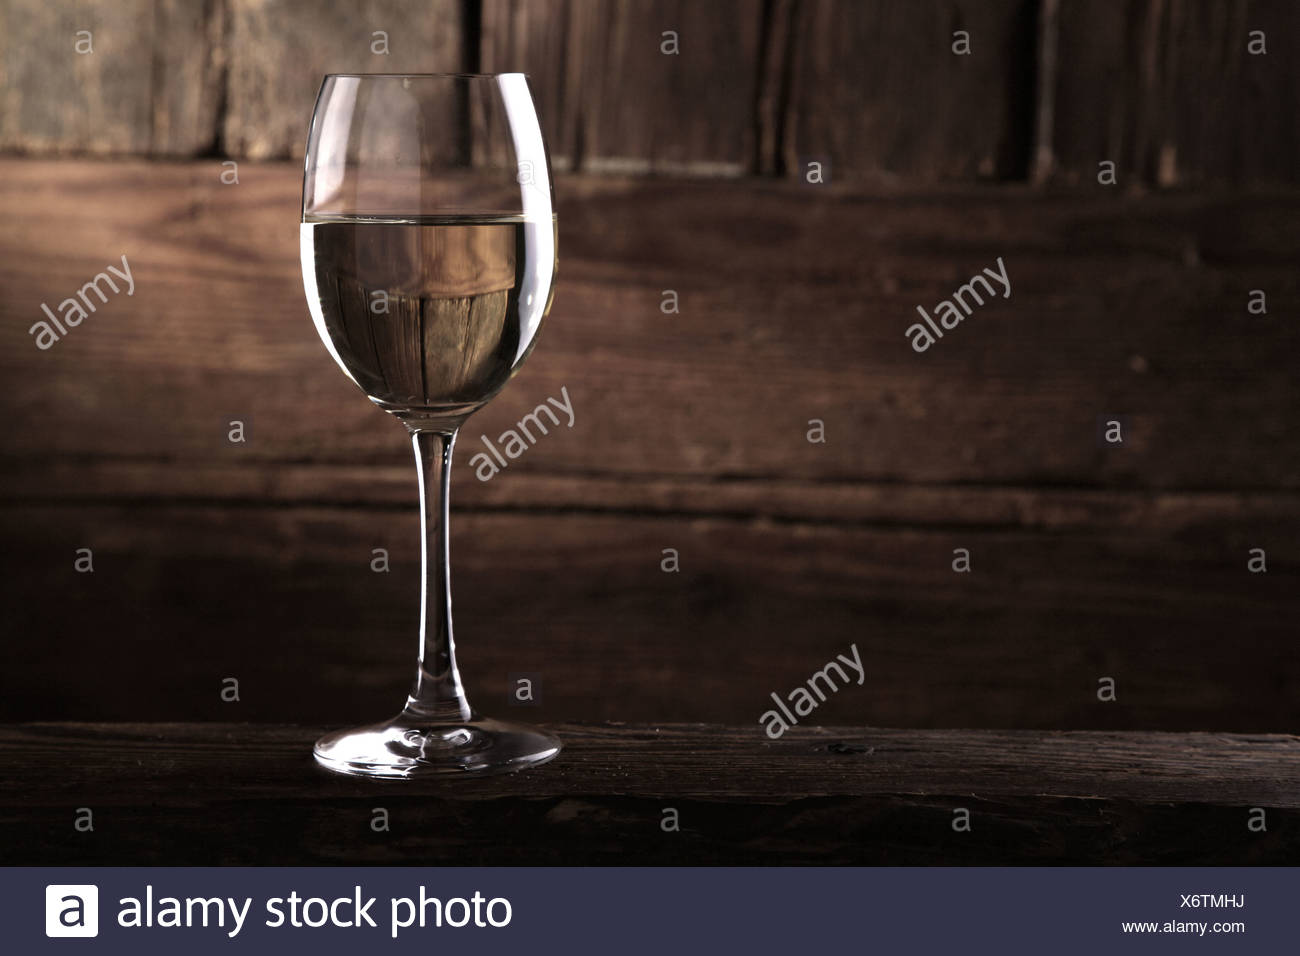 A glass of white wine in front of a rustic wooden wall - Stock Image